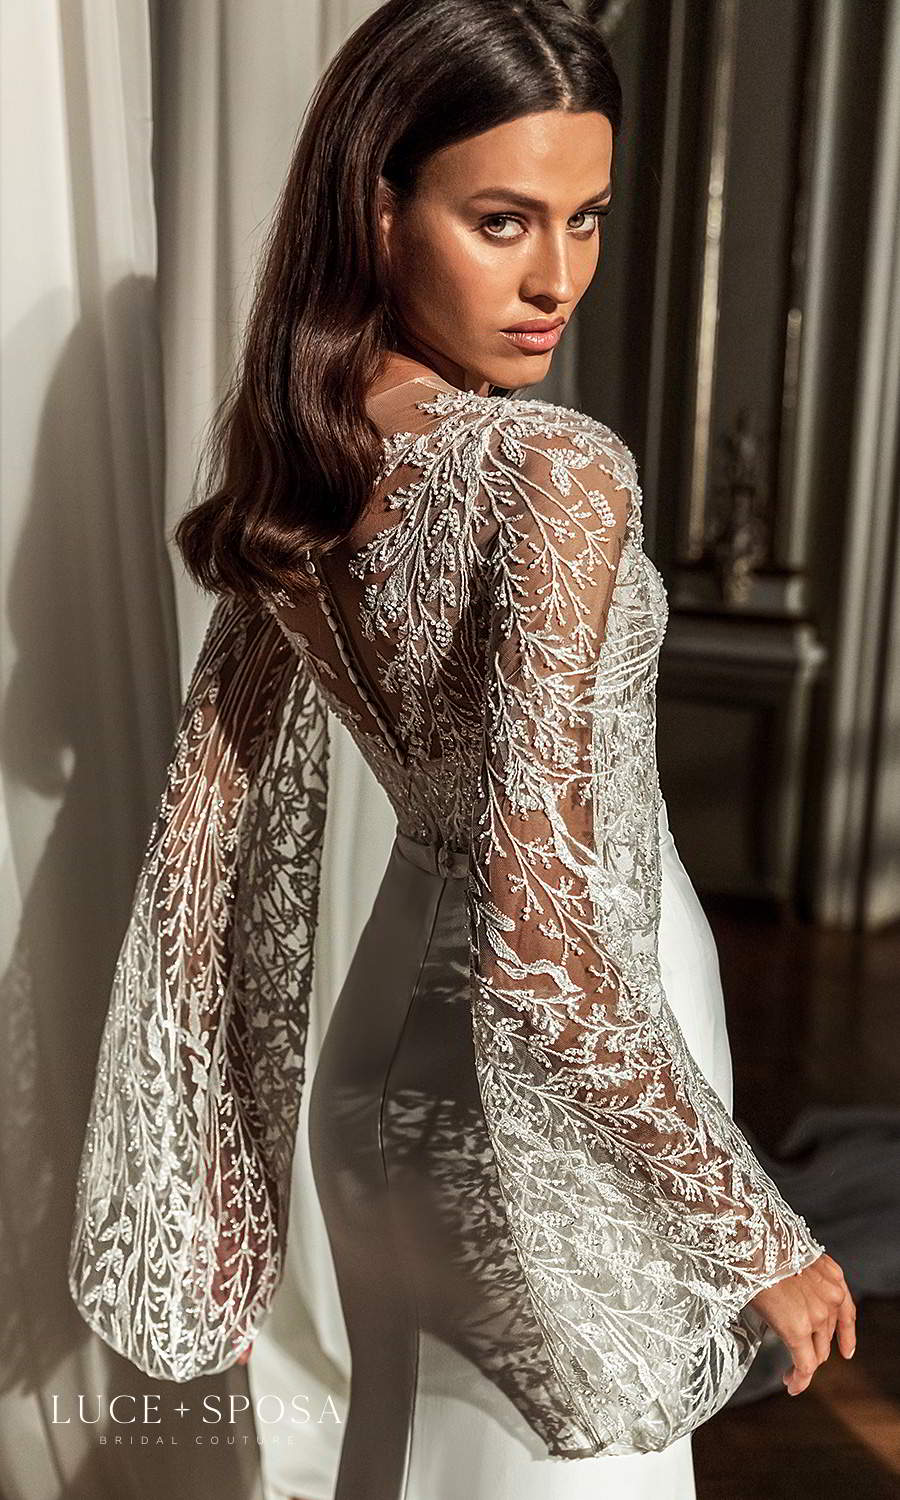 luce sposa 2021 shades of couture bridal long flare sleeves plunging v neckline heavily embellished bodice clean skirt sheath wedding dress (willow) zbv